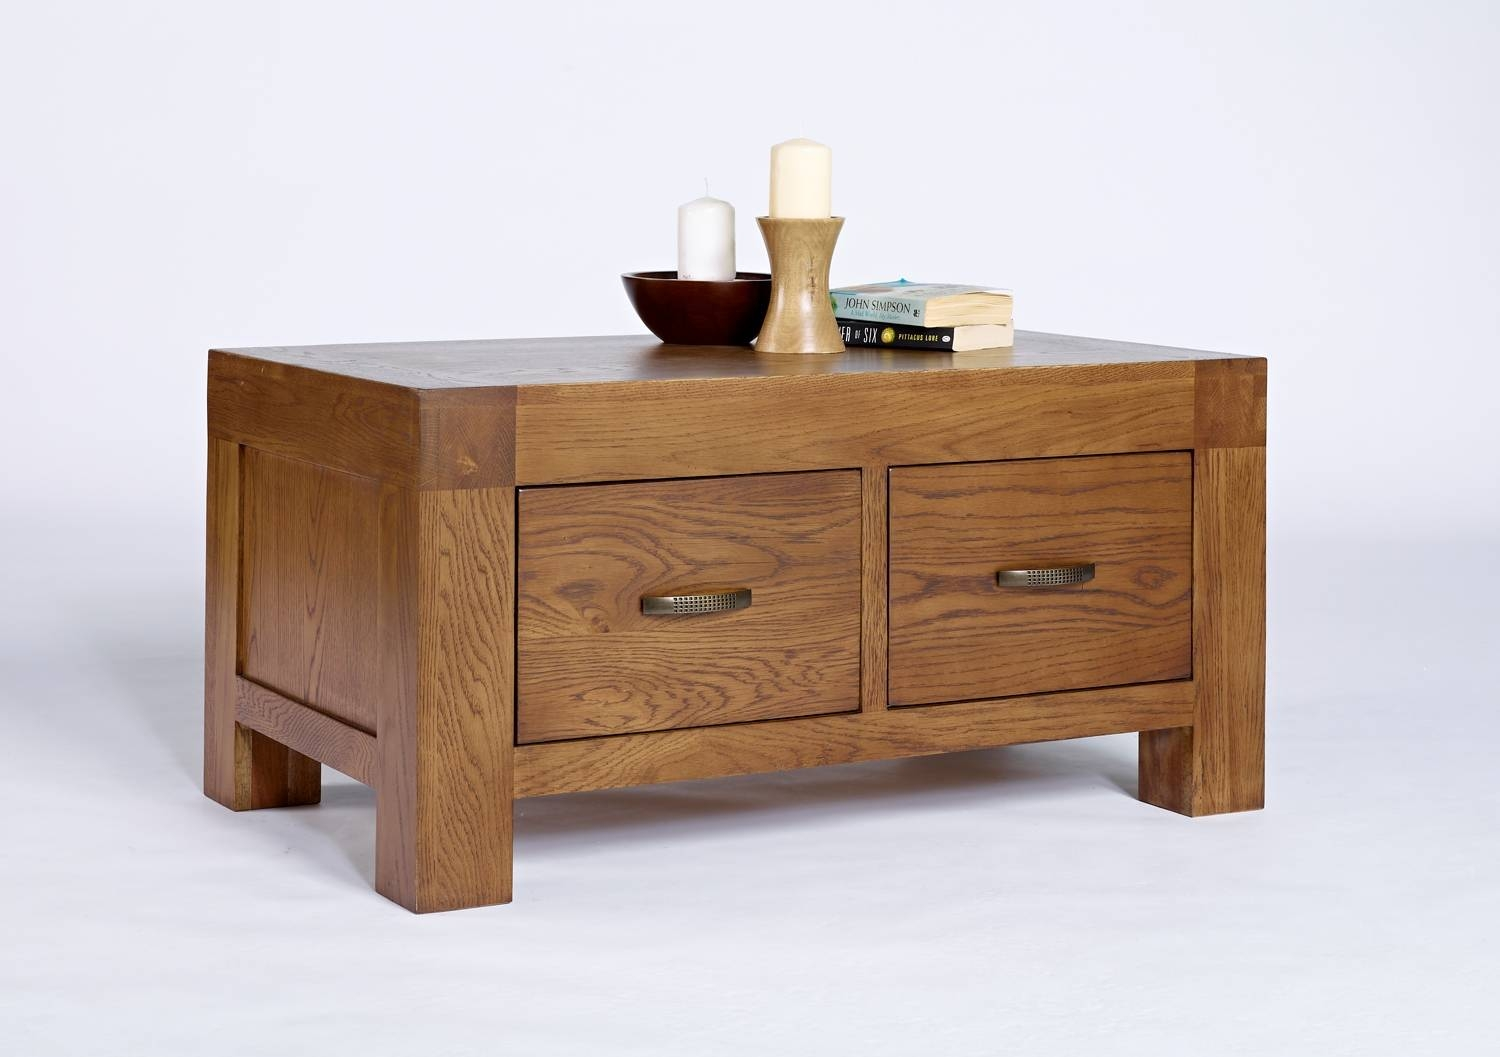 Valencia Rustic Oak Two Drawer Coffee Table | Hampshire Furniture in Oak Coffee Tables With Storage (Image 15 of 15)